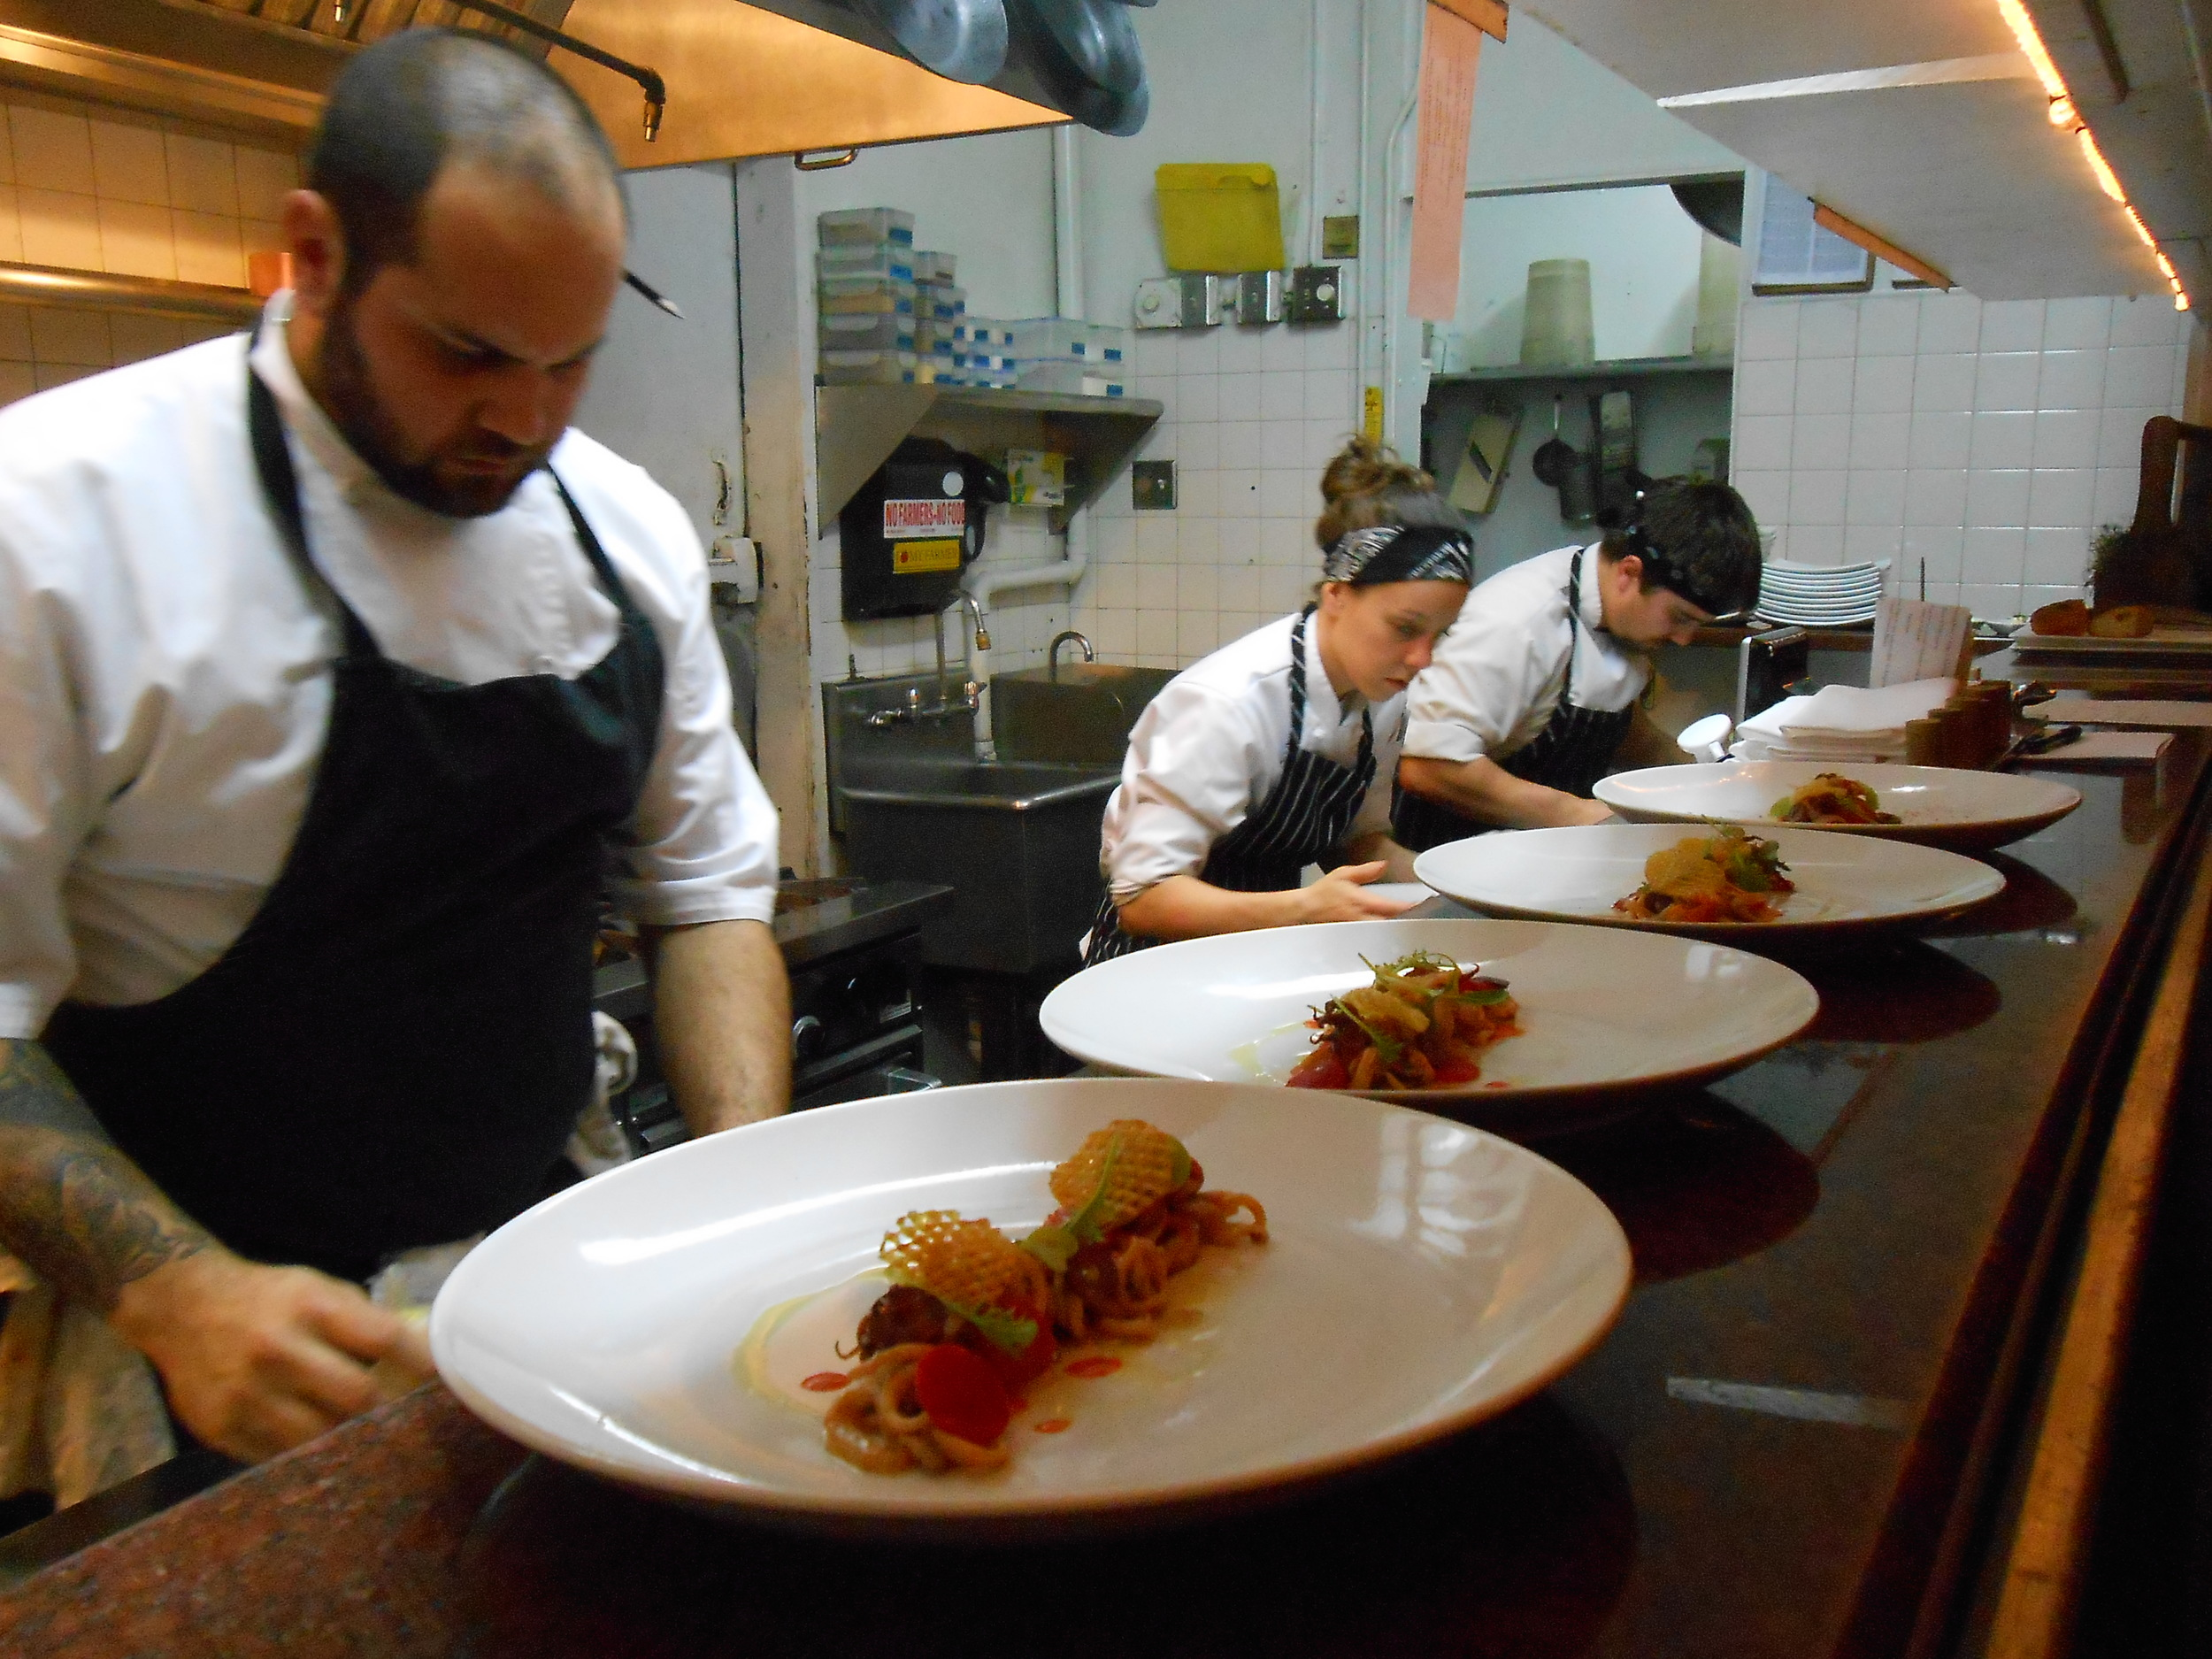 Plating the squid dish